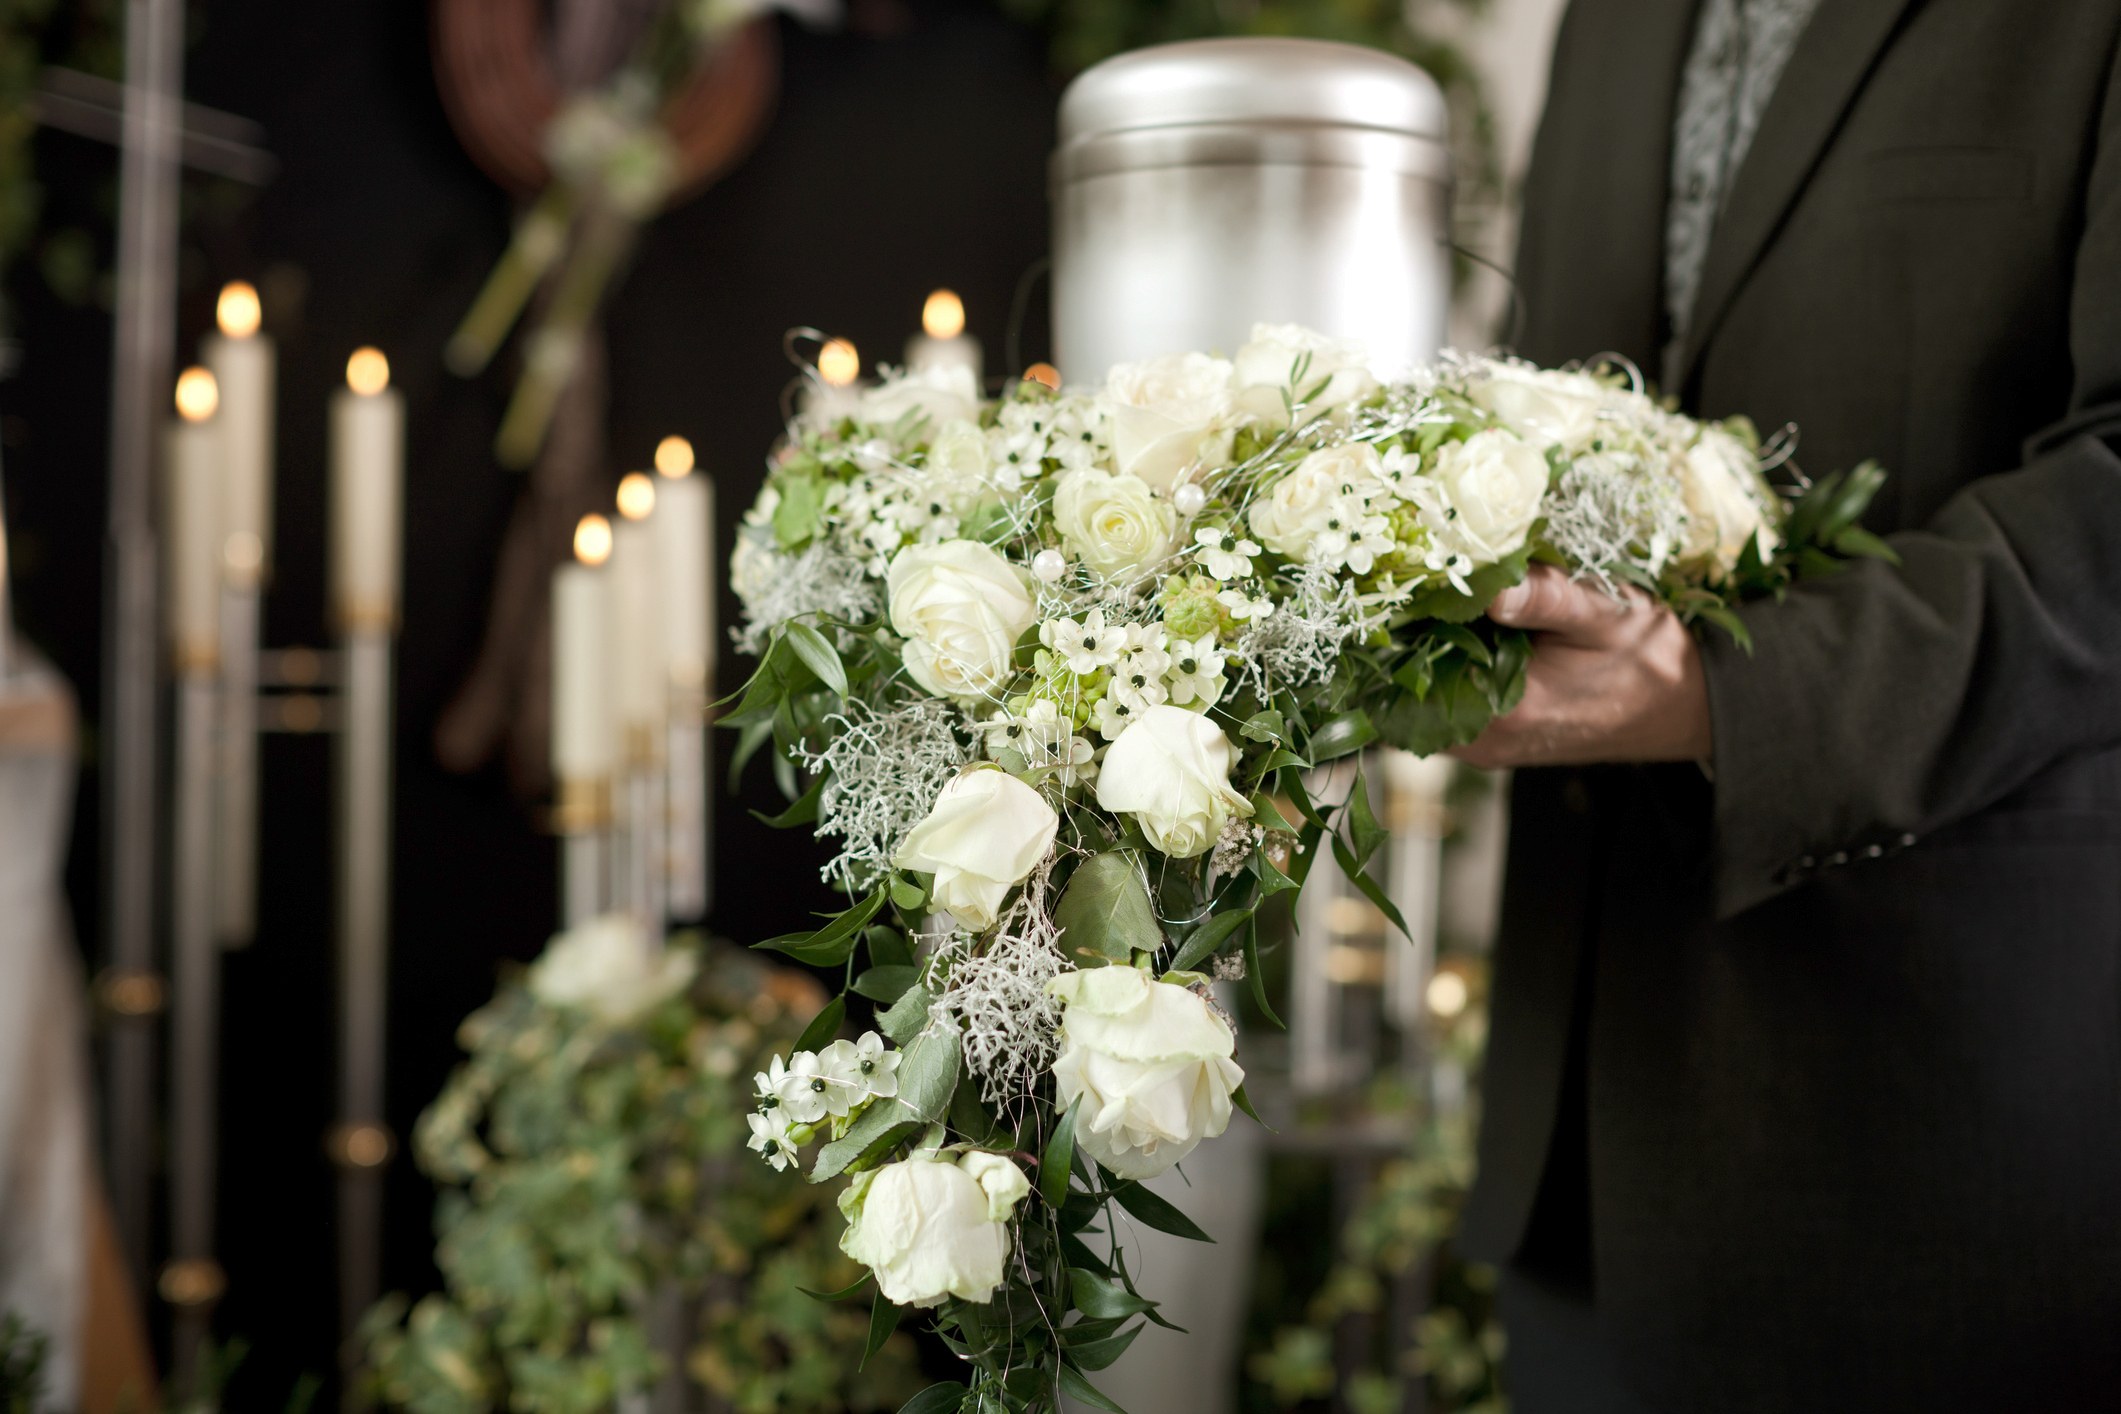 Examples of Tributes Given at Funerals | LoveToKnow